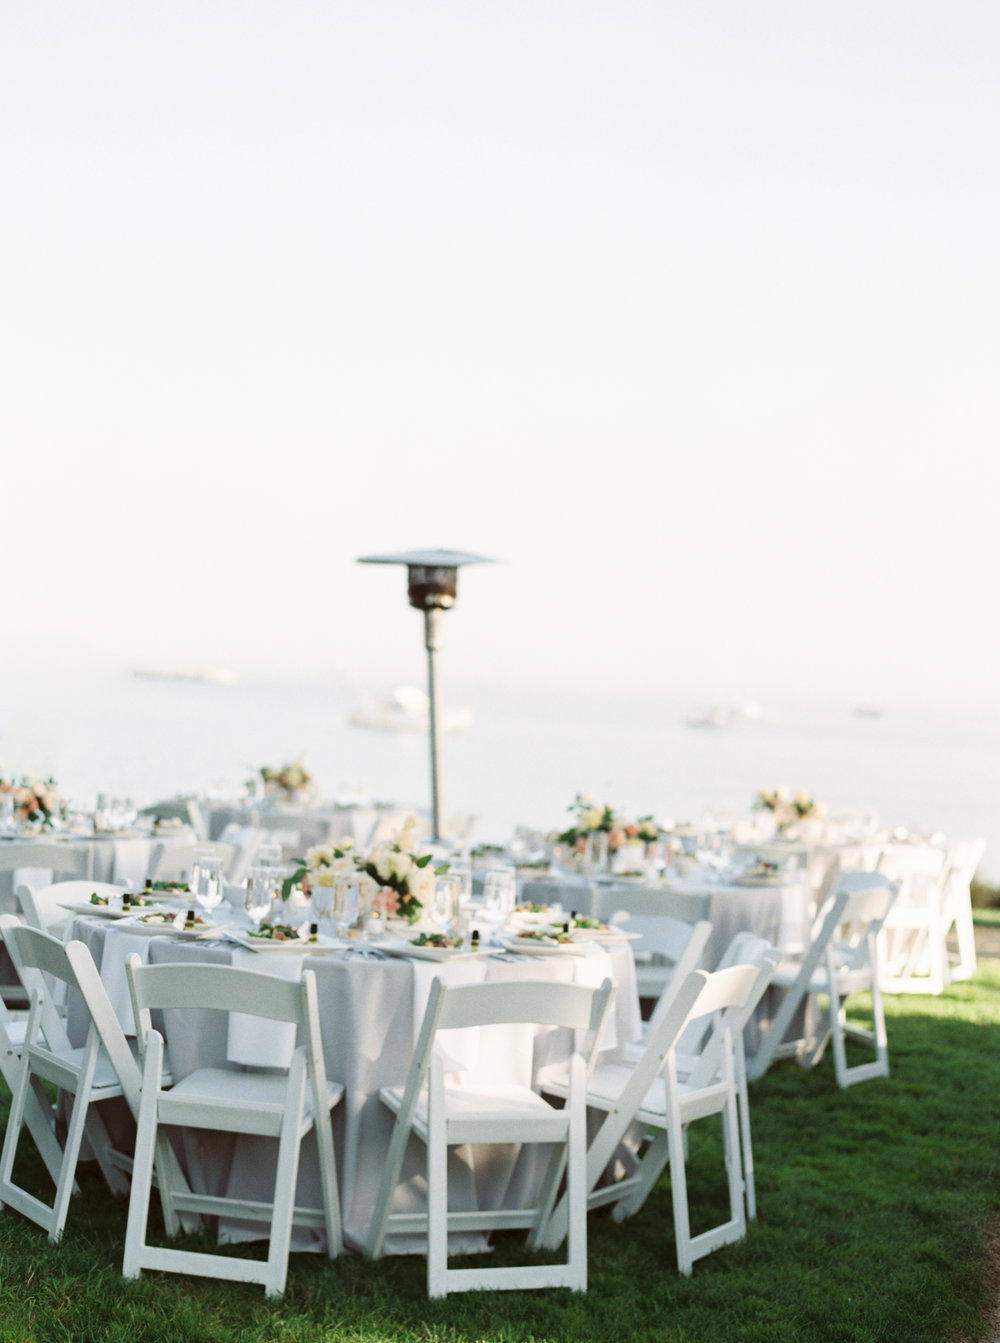 trynhphoto_socal_sf_halfmoon_bay_wedding_photographer_JA-443.jpg